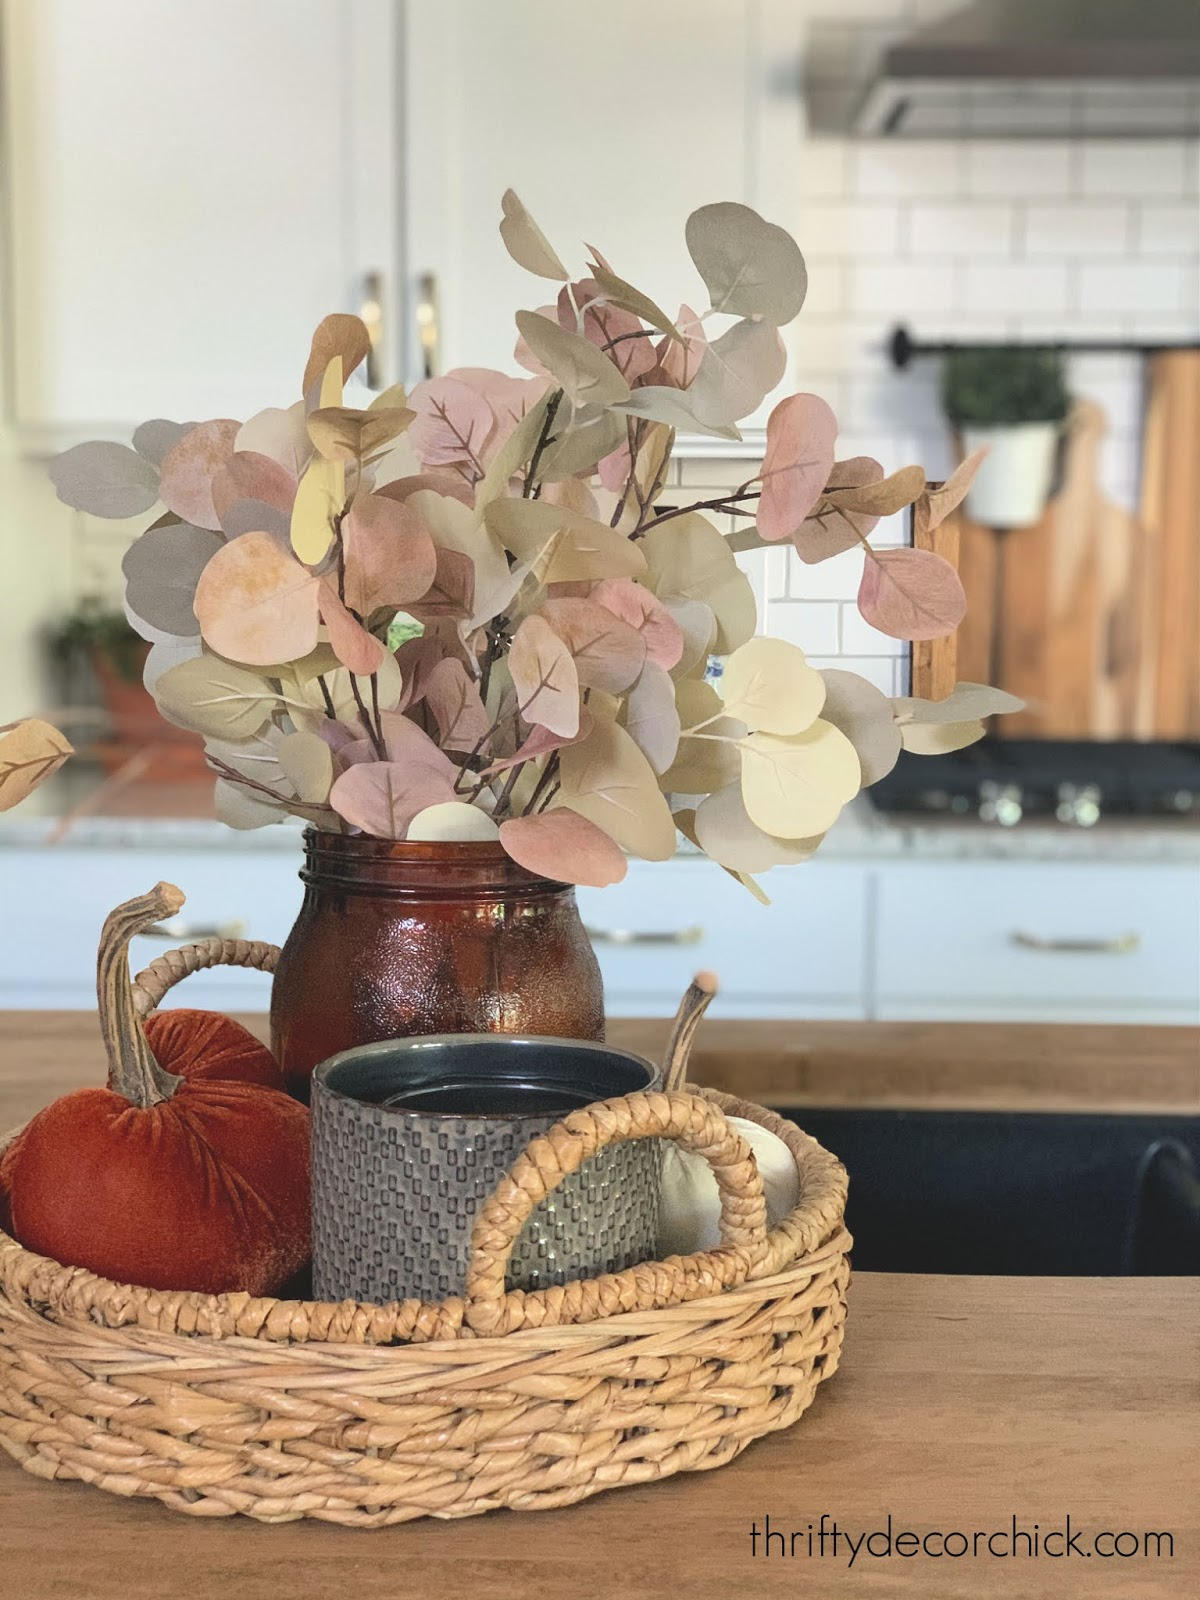 Decorate autumn vignettes with trays